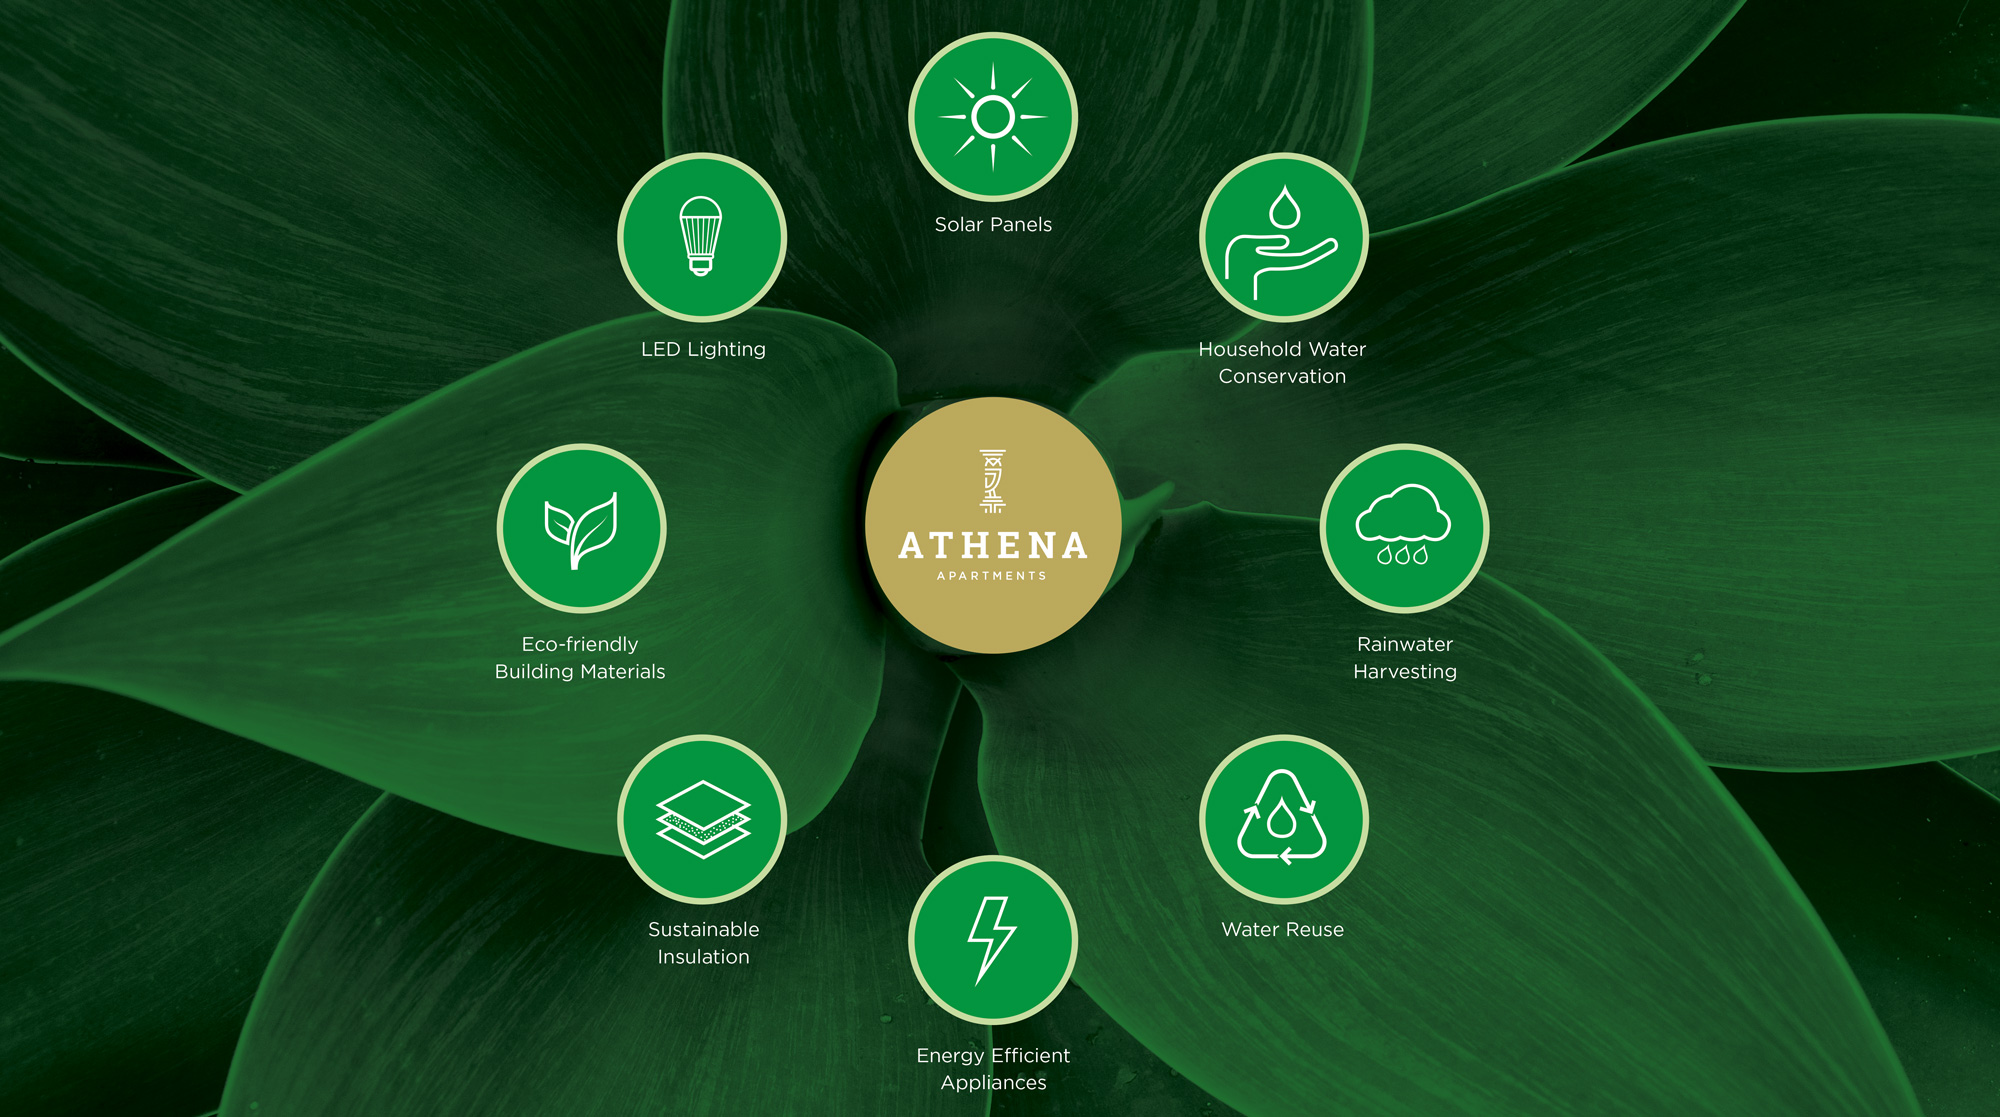 Sustainability Features